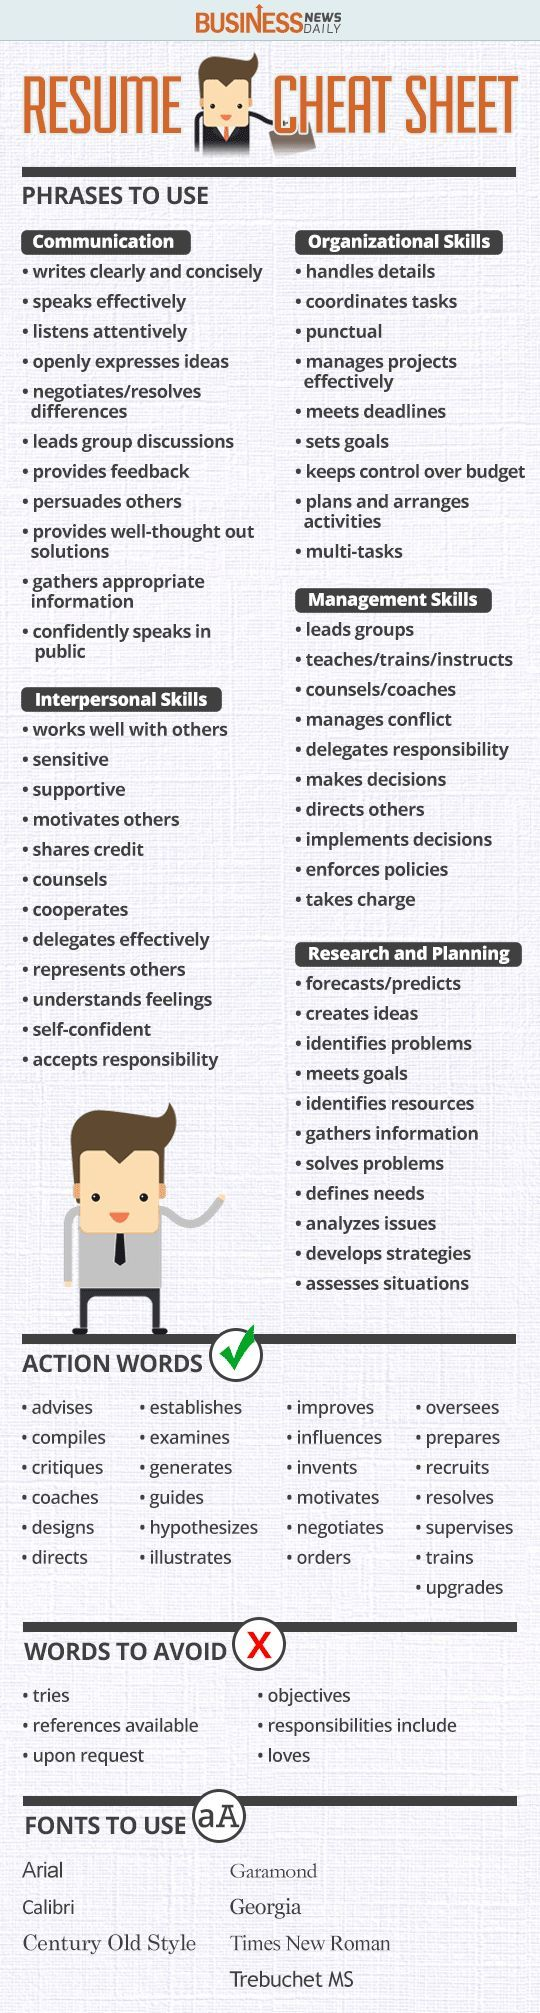 Resume Cheat Sheet. Re-pinned by #Europass